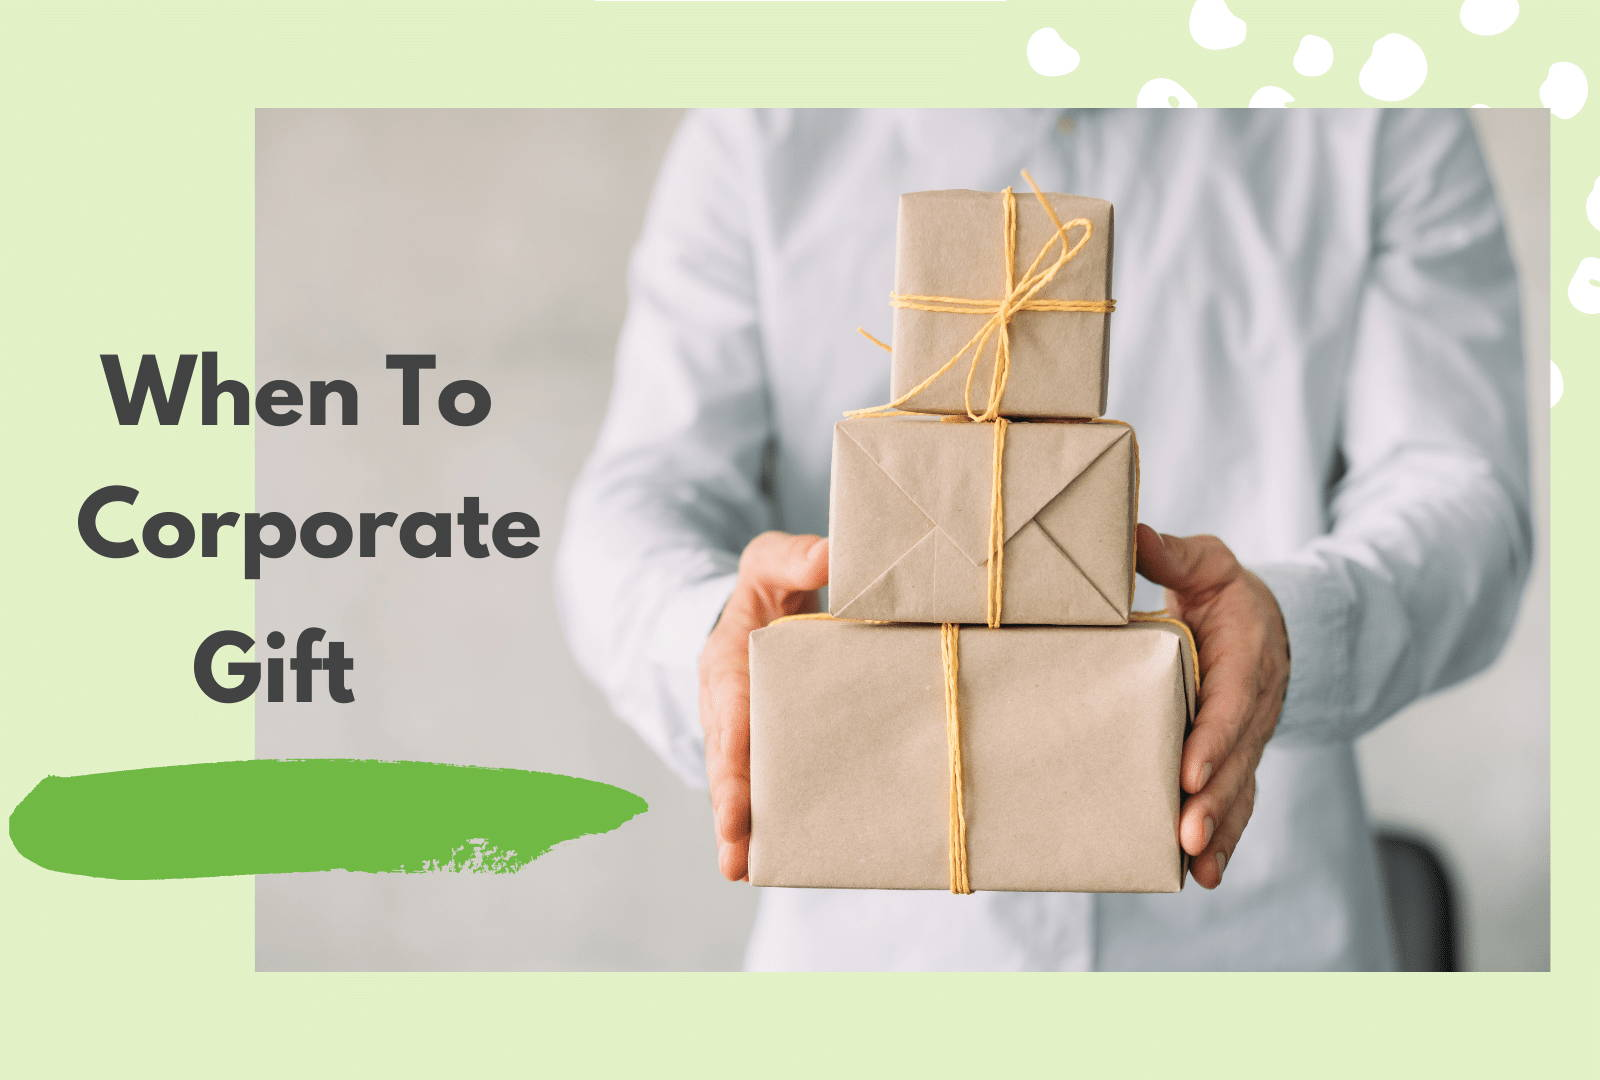 Corporate Gifting Provider: FreshJax organic spices. Recipient holding 3 stacked gift boxes wrapped in brown paper with a bow.